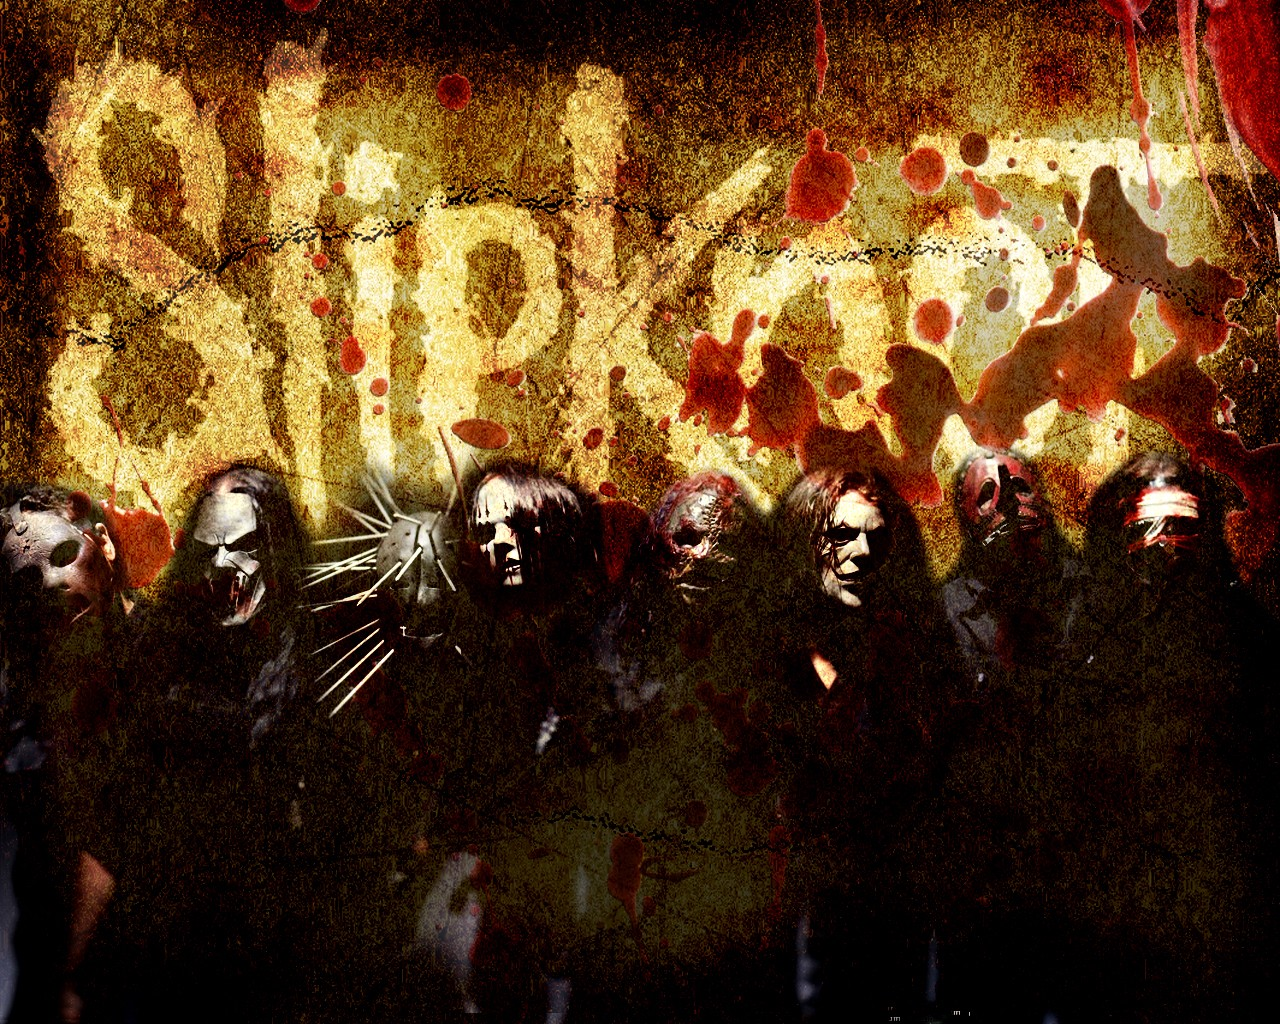 wallpapers photos Slipknot wallpapers photo Slipknot wallpapers 1280x1024